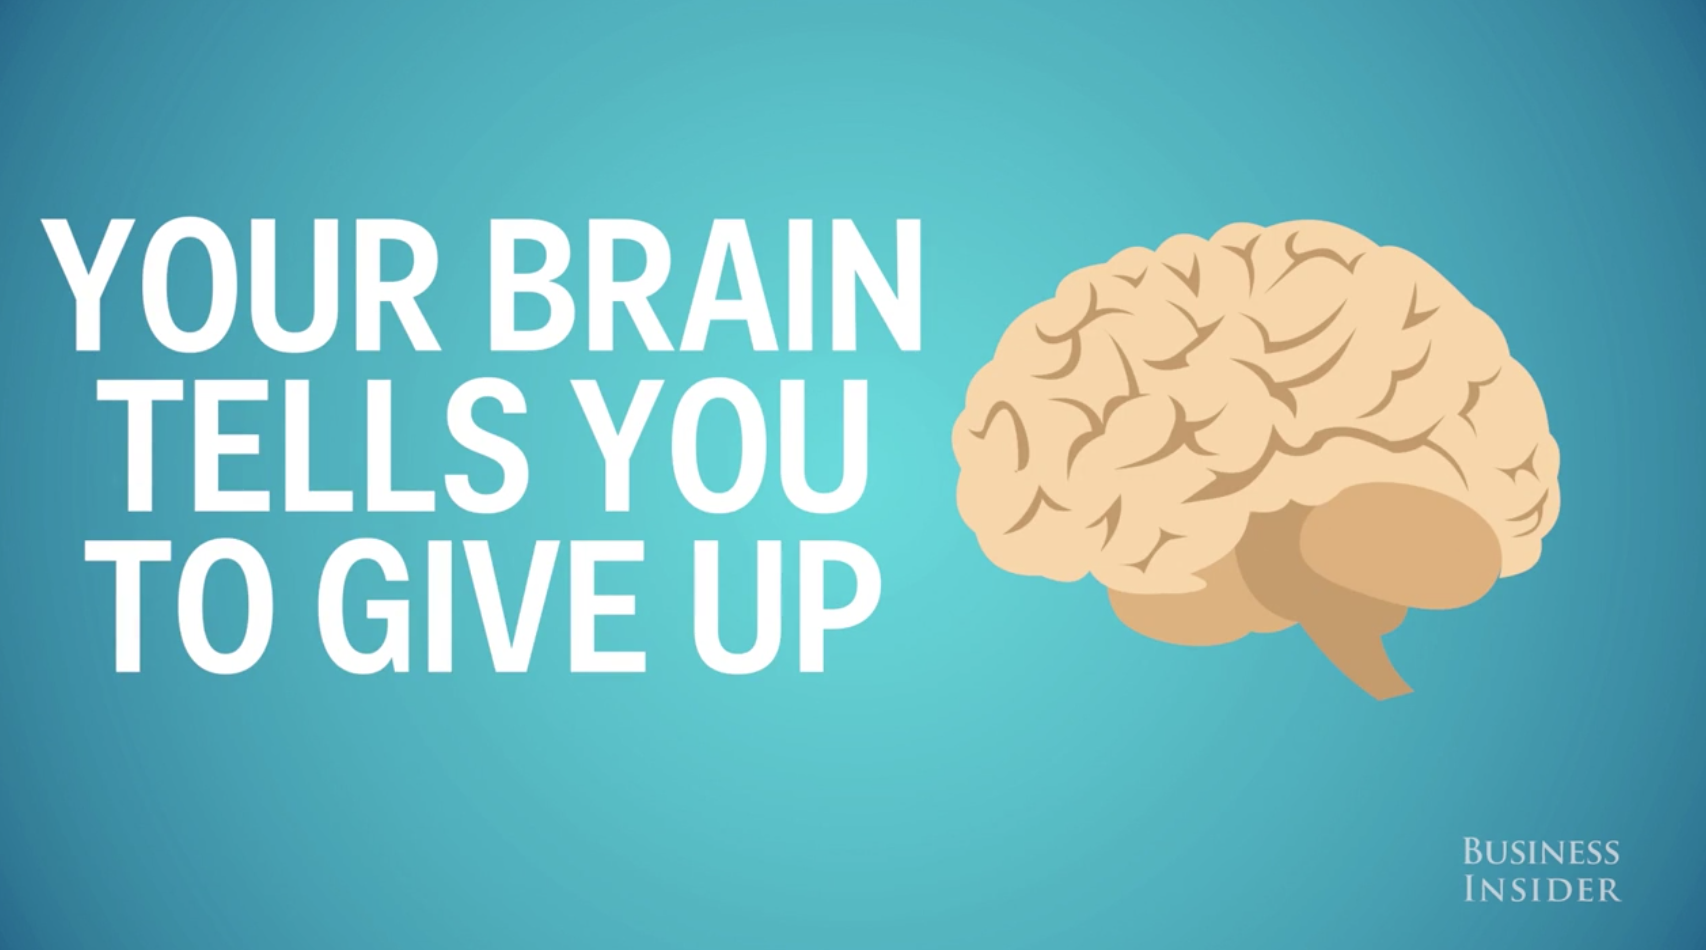 Does your brain tell you to give up?